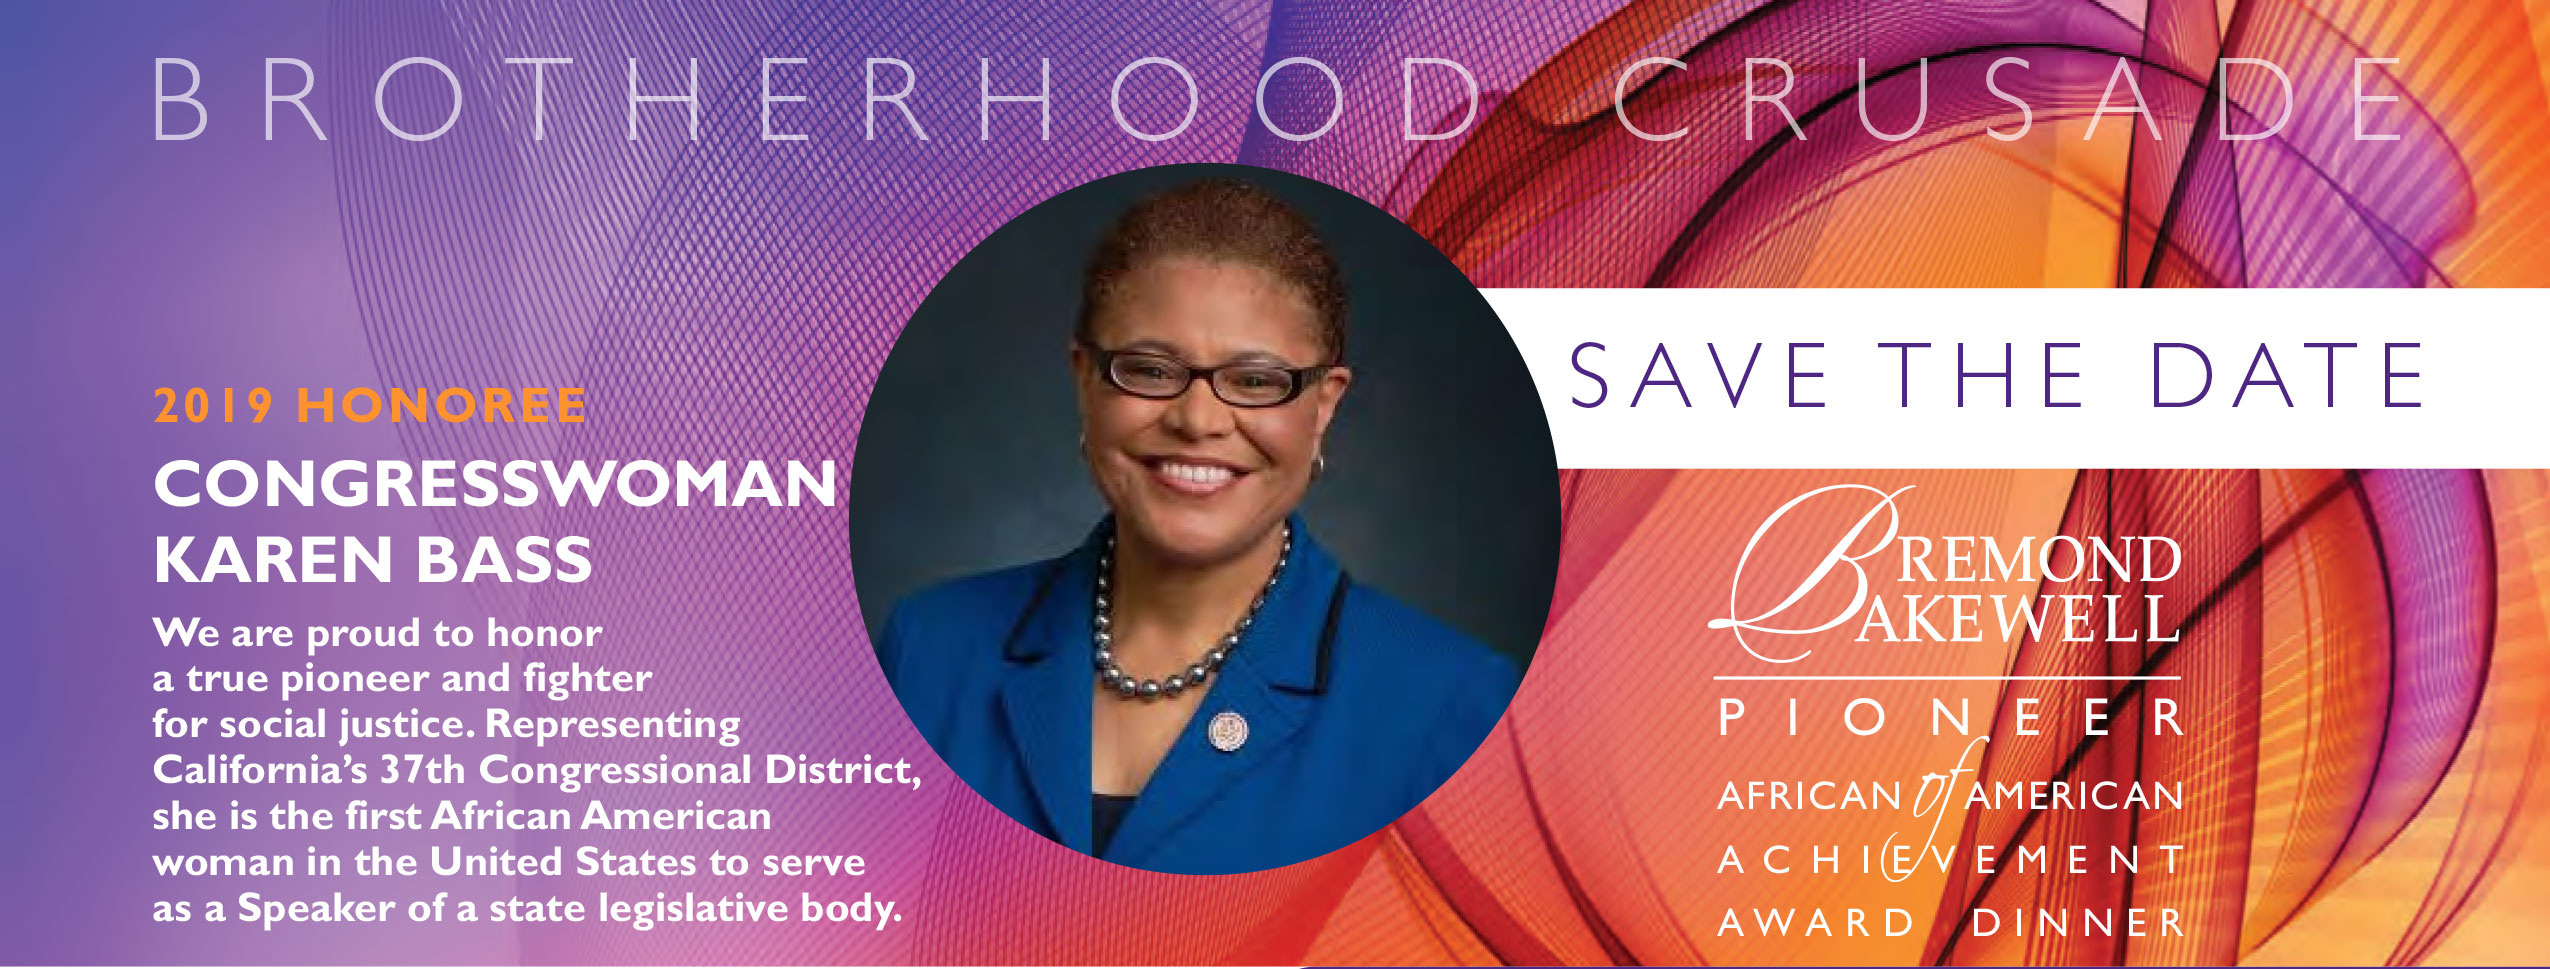 Save The Date: 2019 Honoree Congresswoman Karen Bass